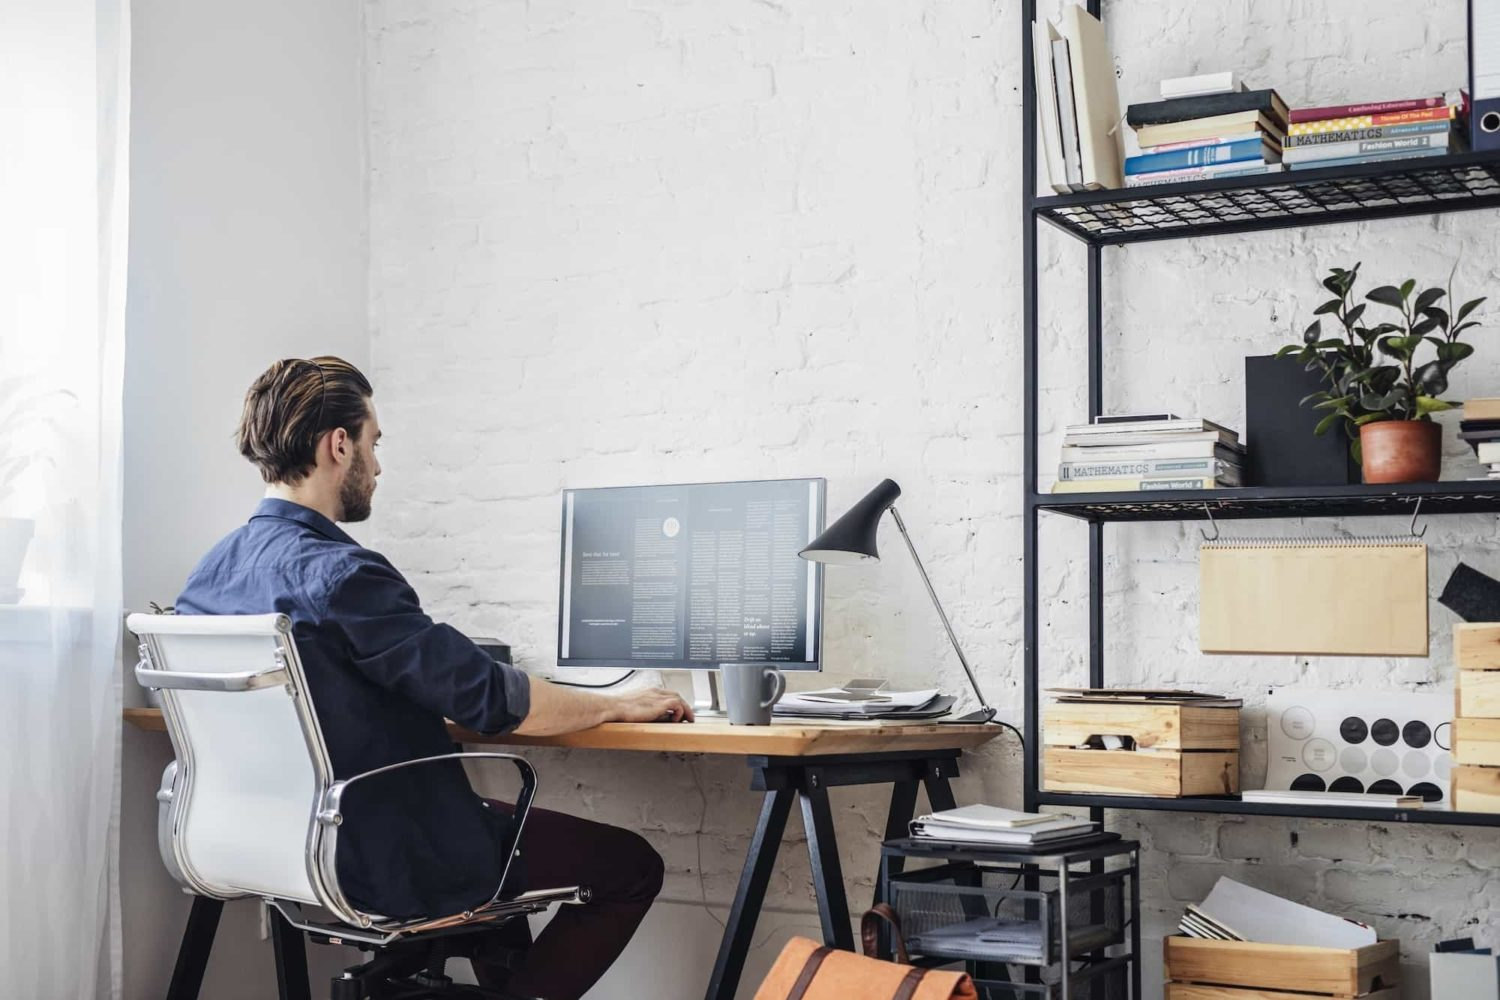 Man working alone in home office